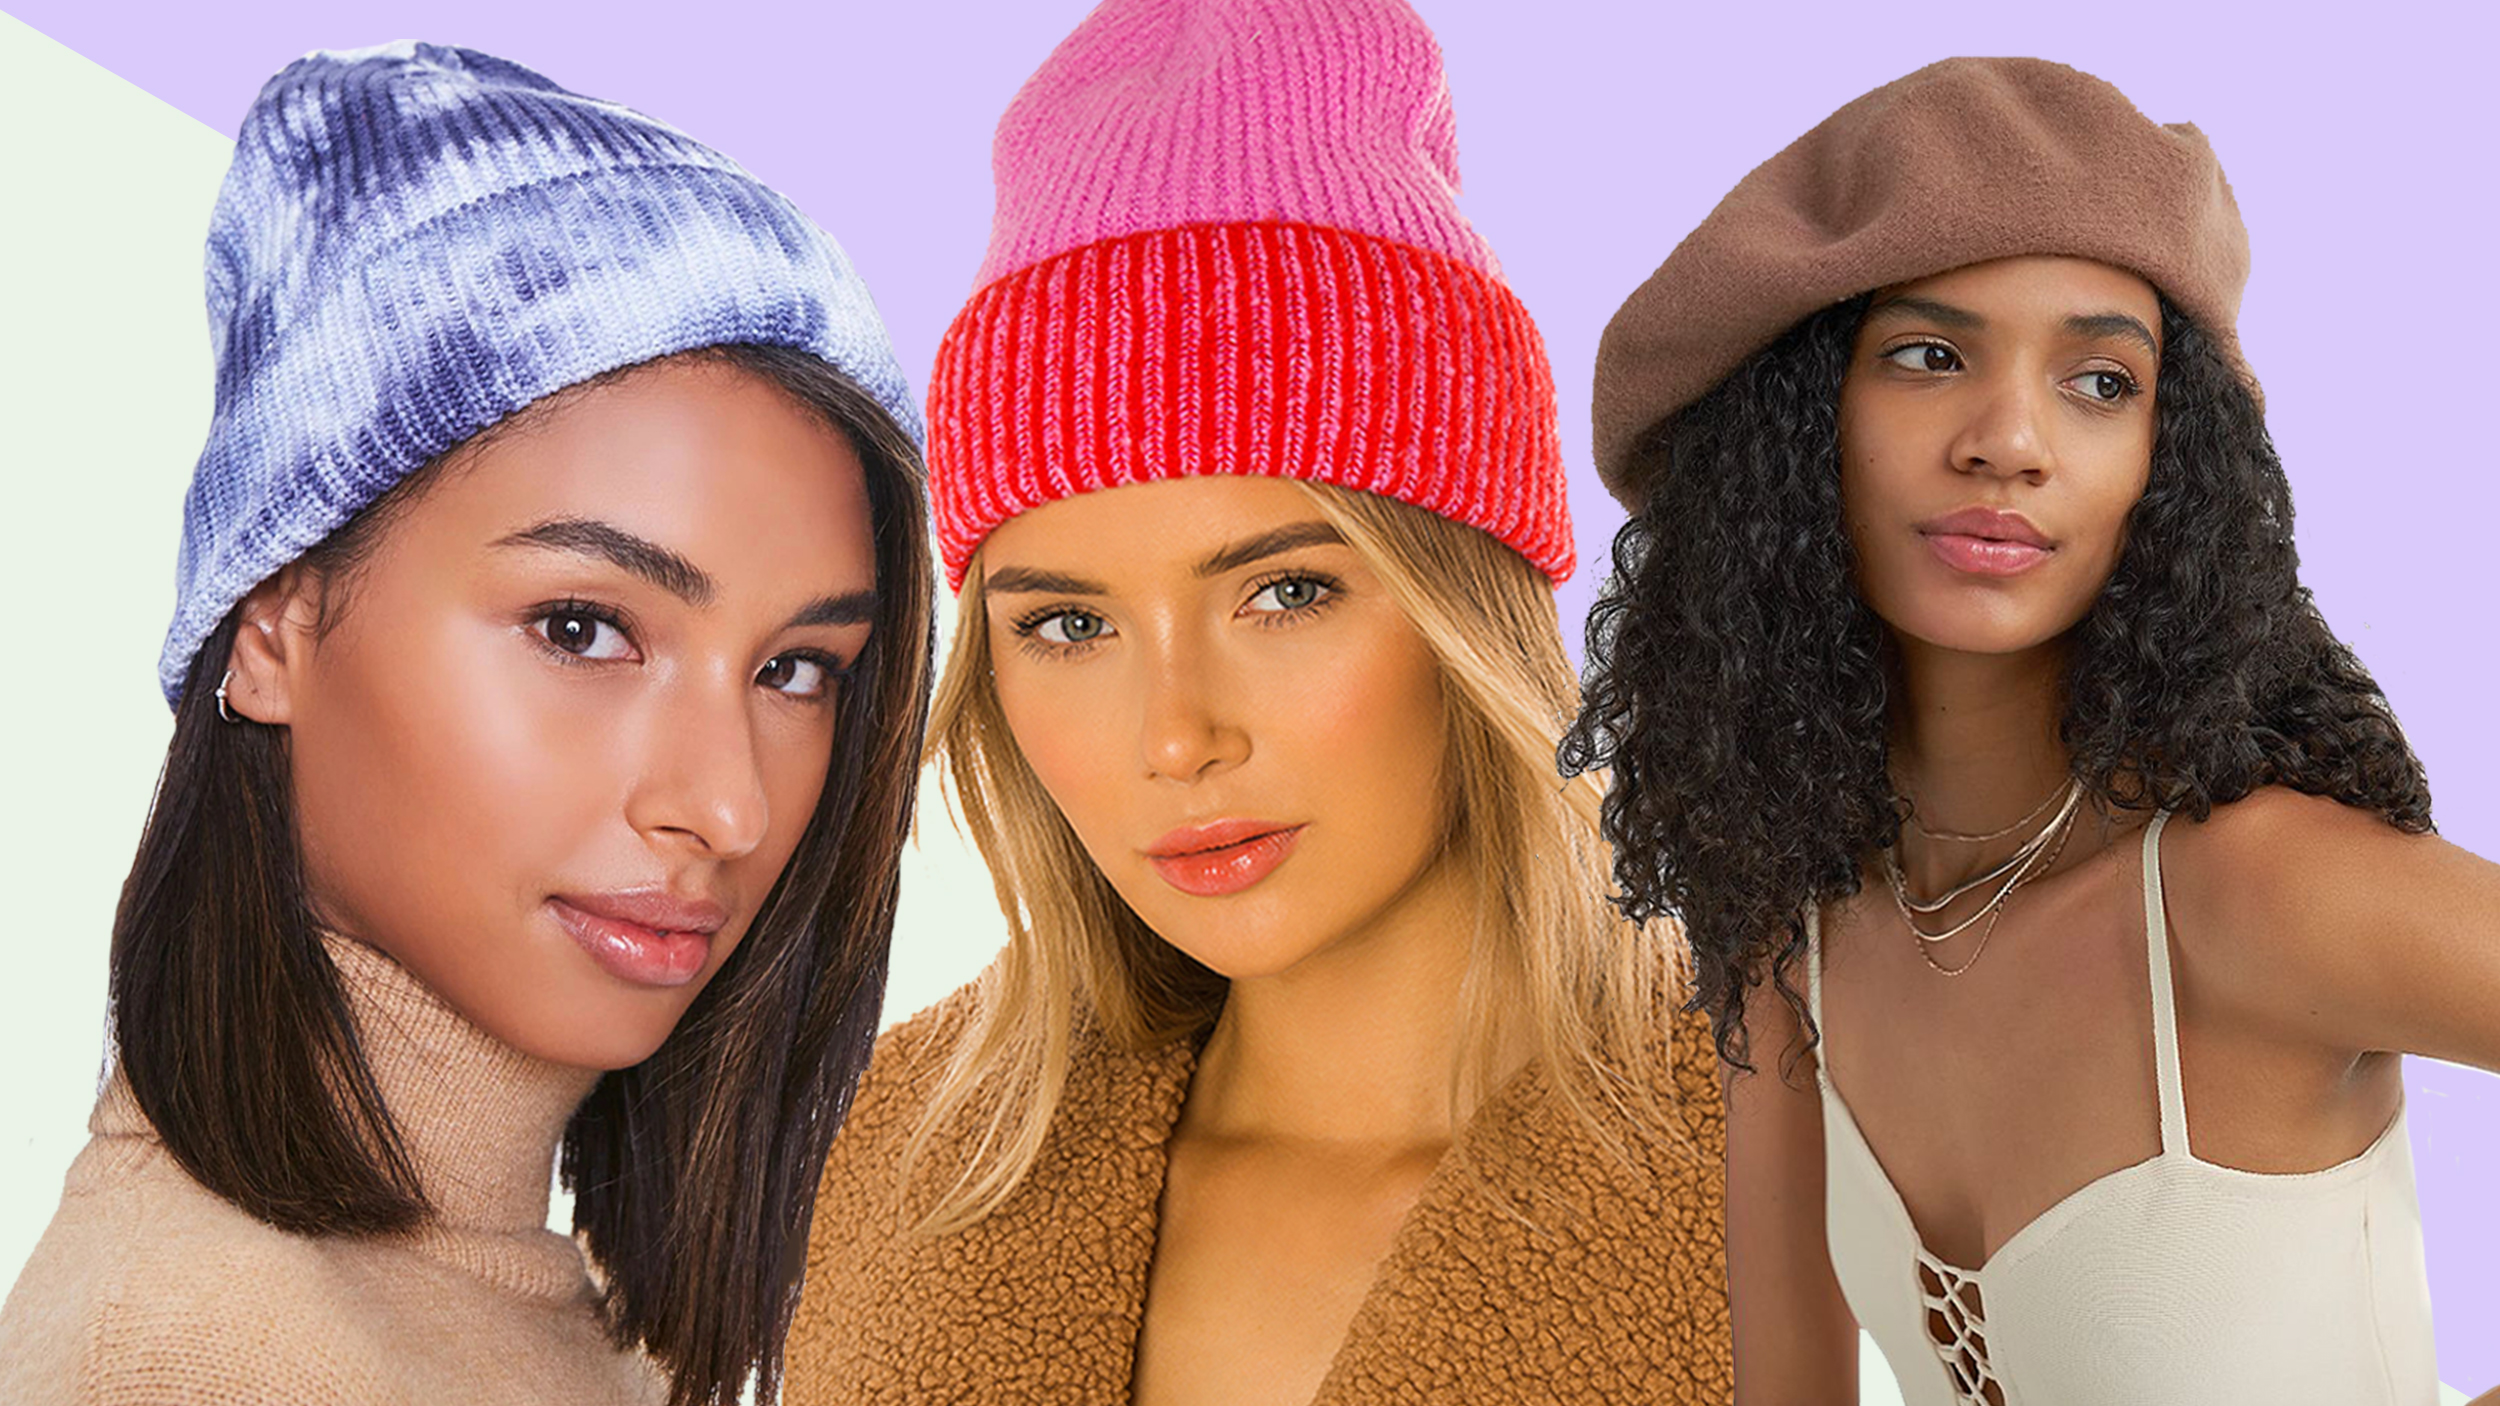 The Best Winter Hats For Women Cnn Underscored